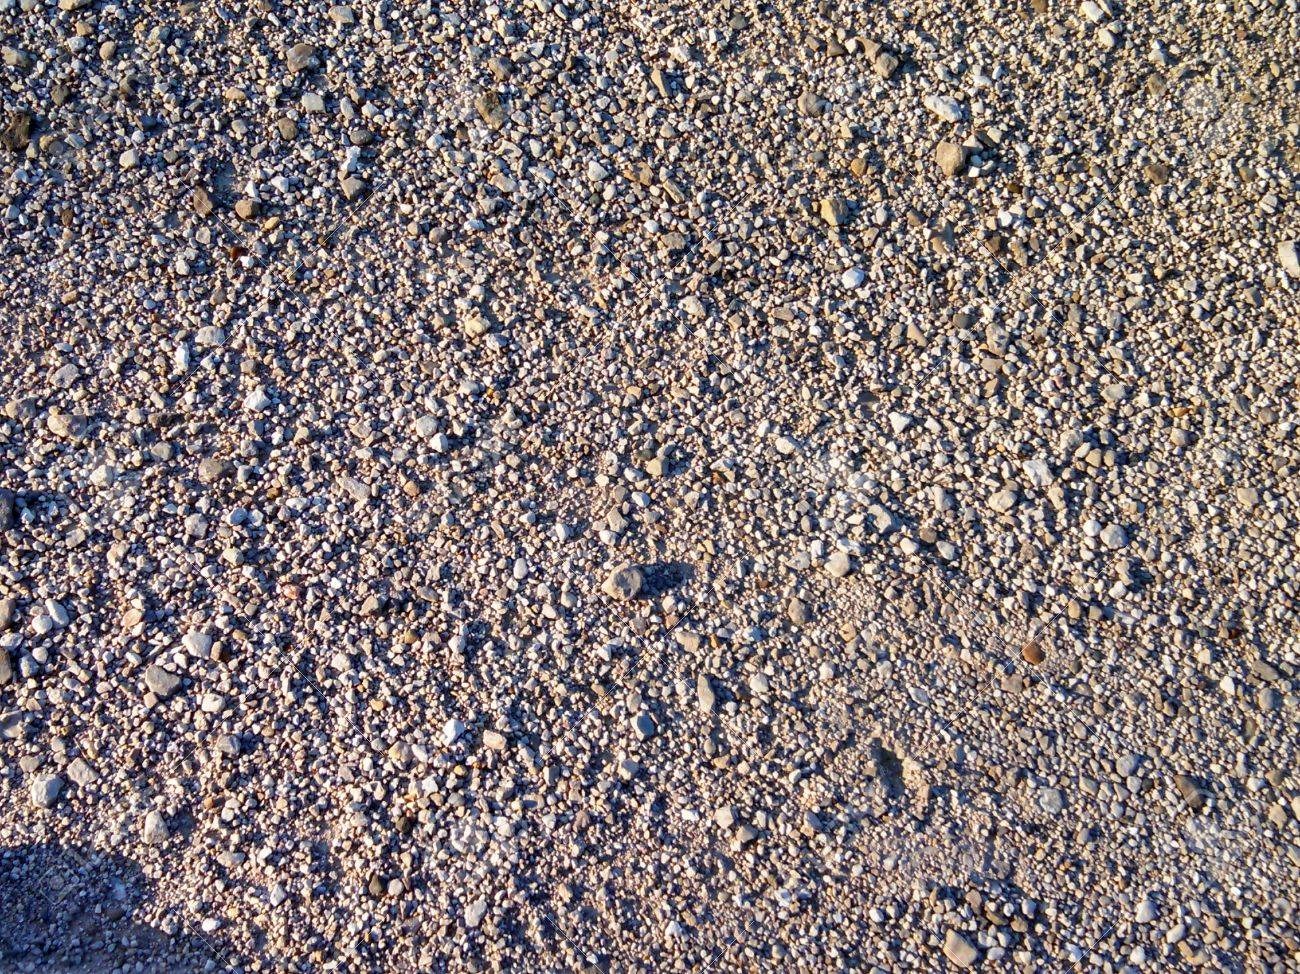 Different sizes of gravel in a parking